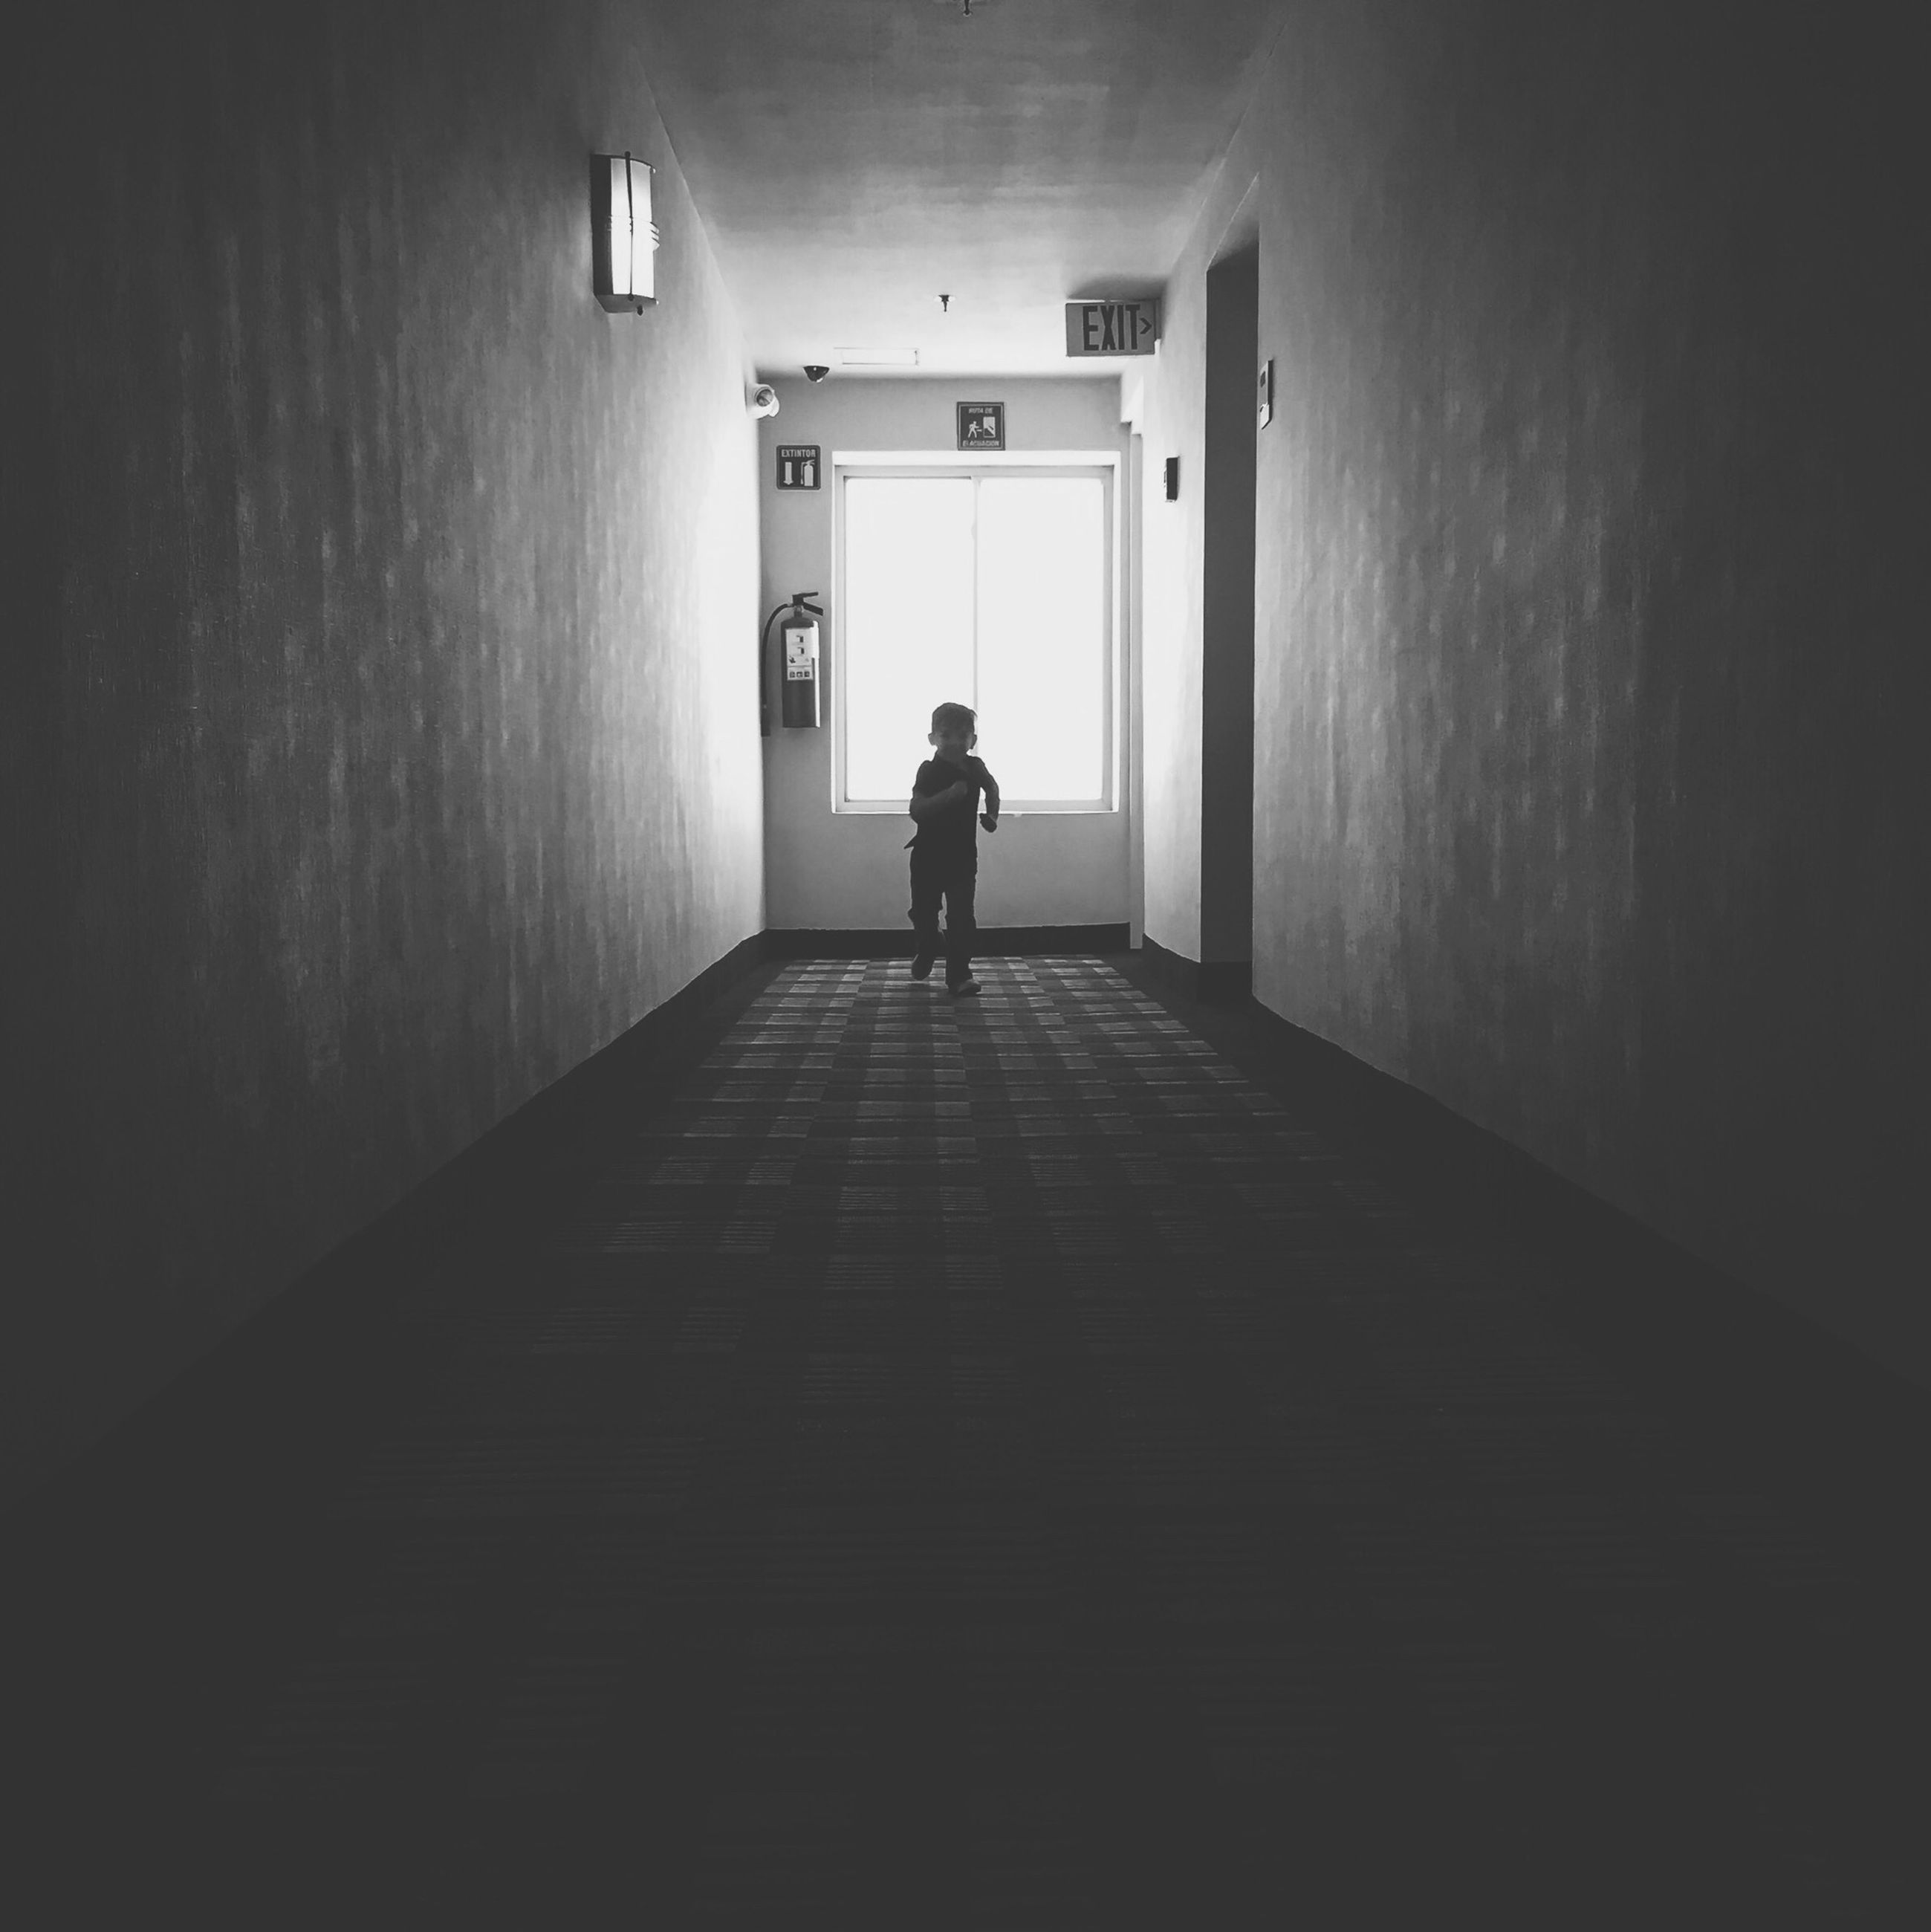 indoors, architecture, rear view, corridor, built structure, full length, lifestyles, men, the way forward, walking, standing, wall - building feature, wall, silhouette, person, leisure activity, door, building